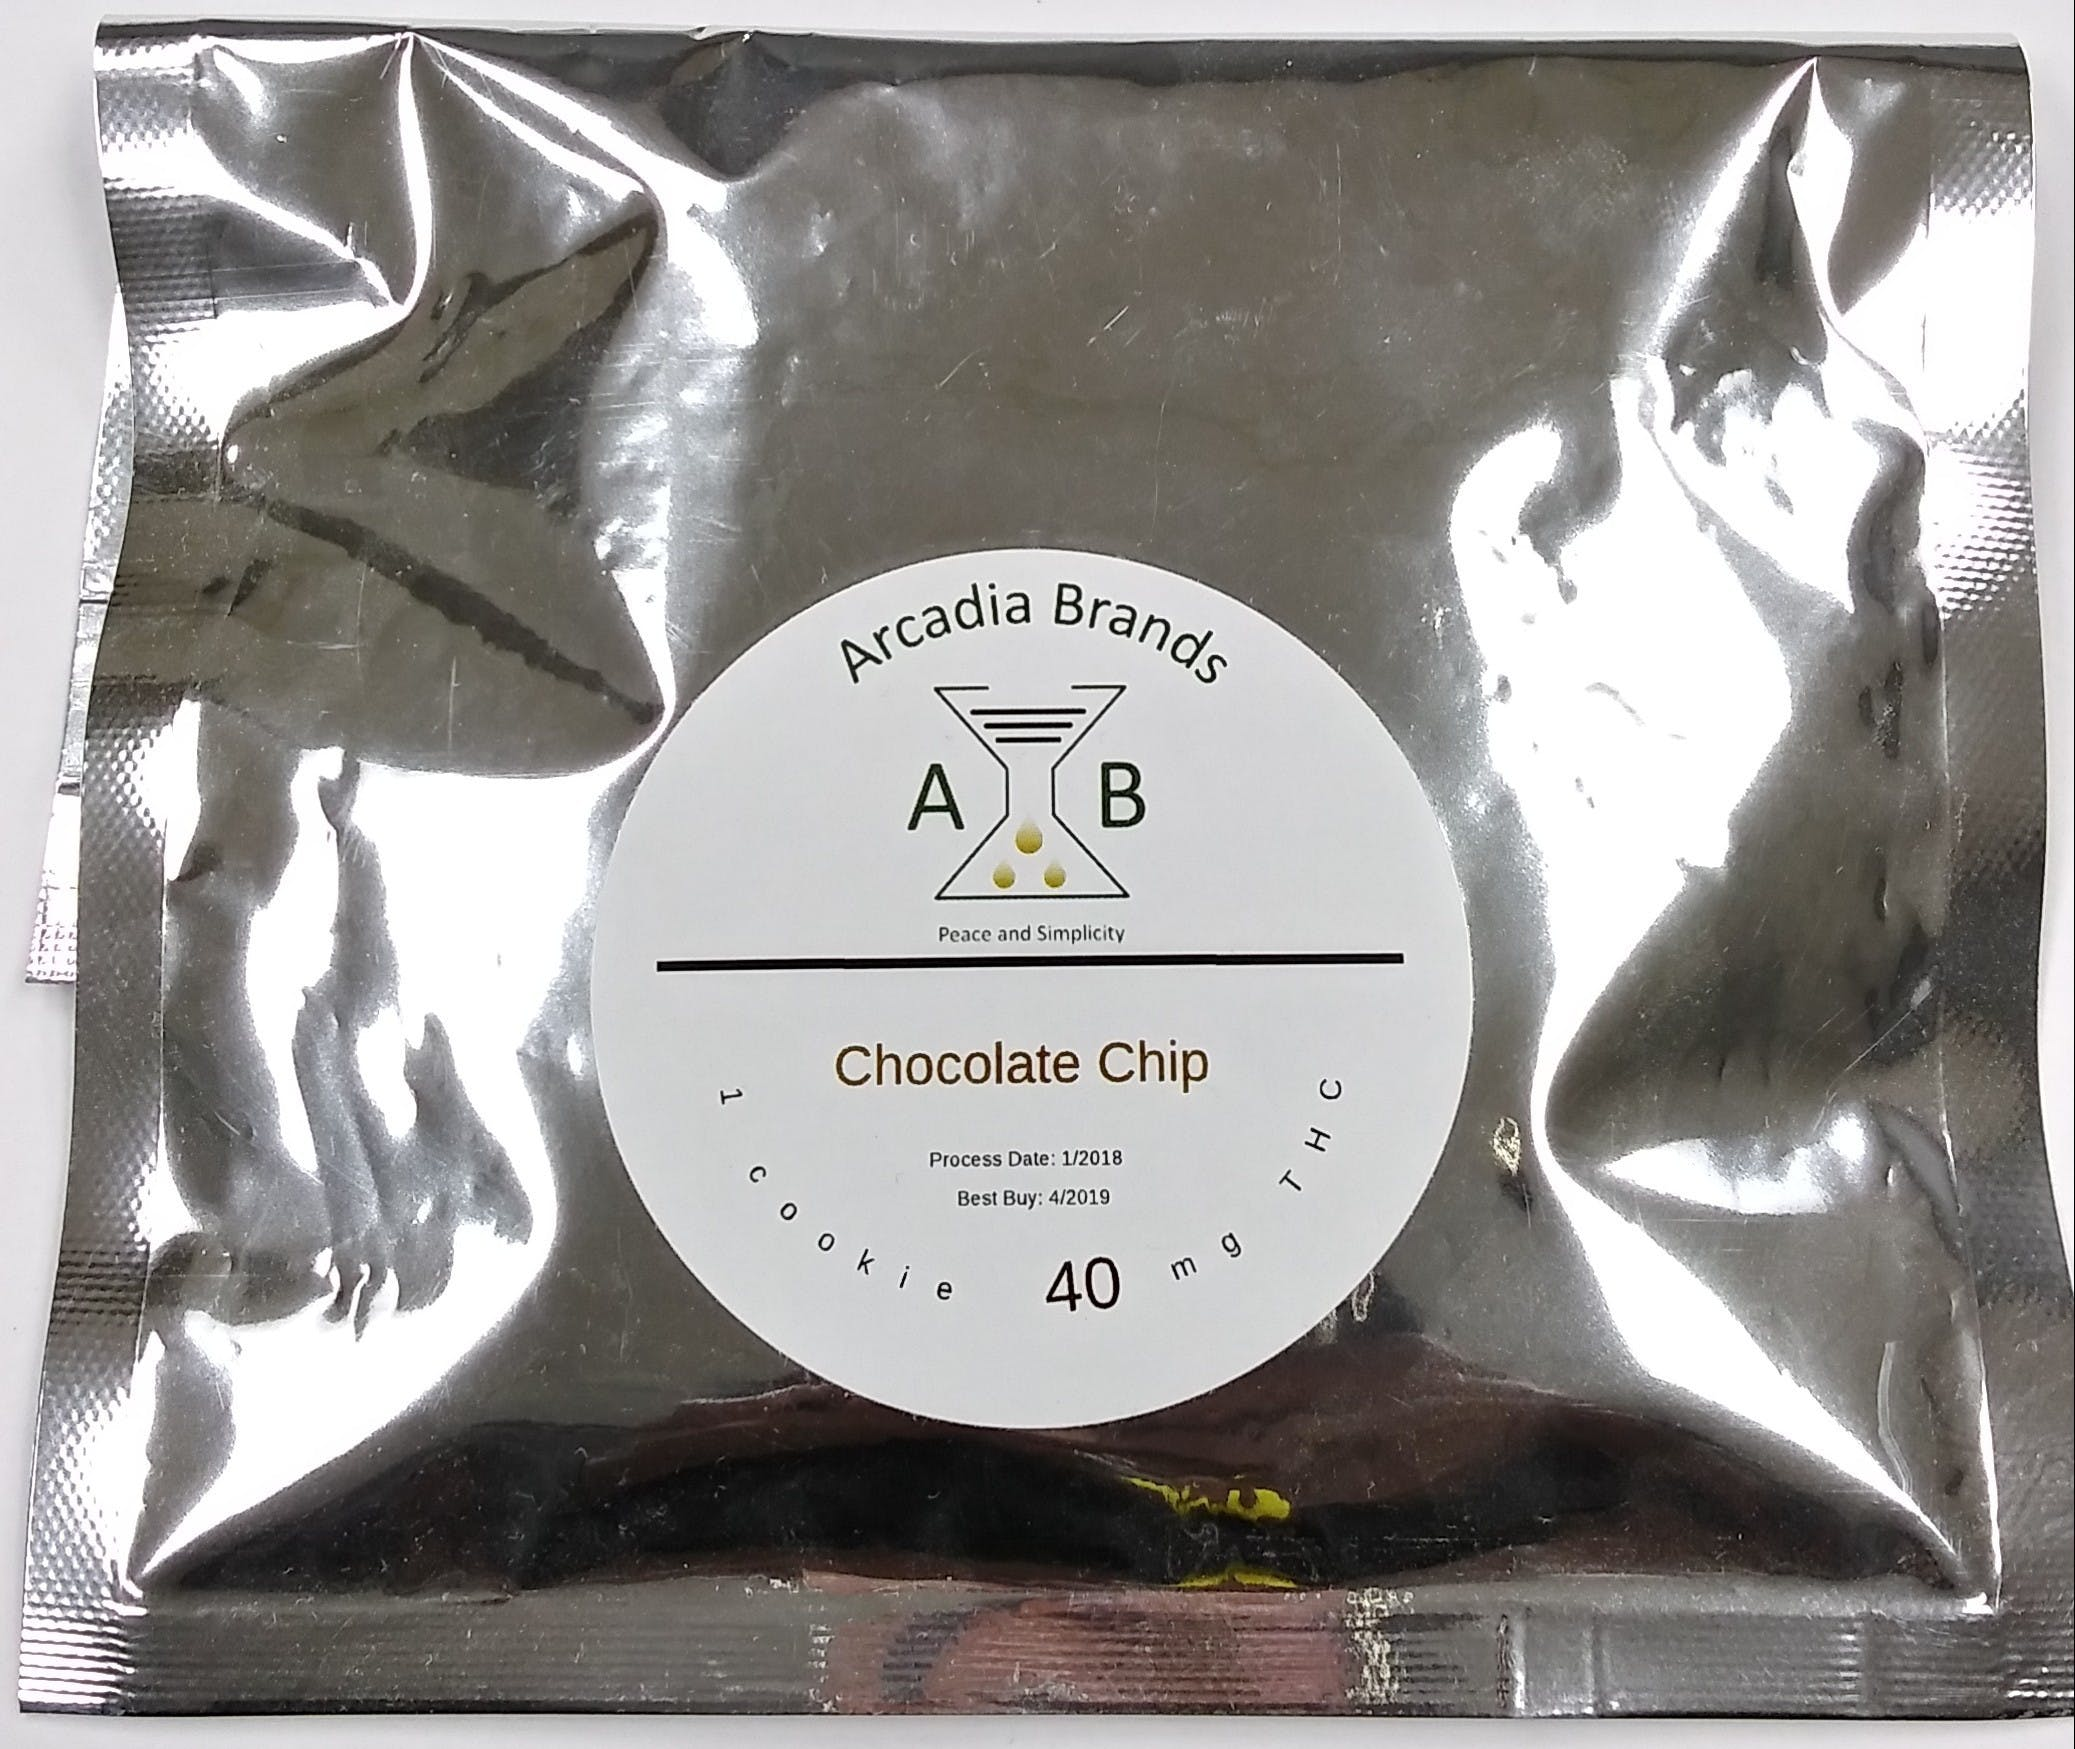 edible-chocolate-chip-40mg